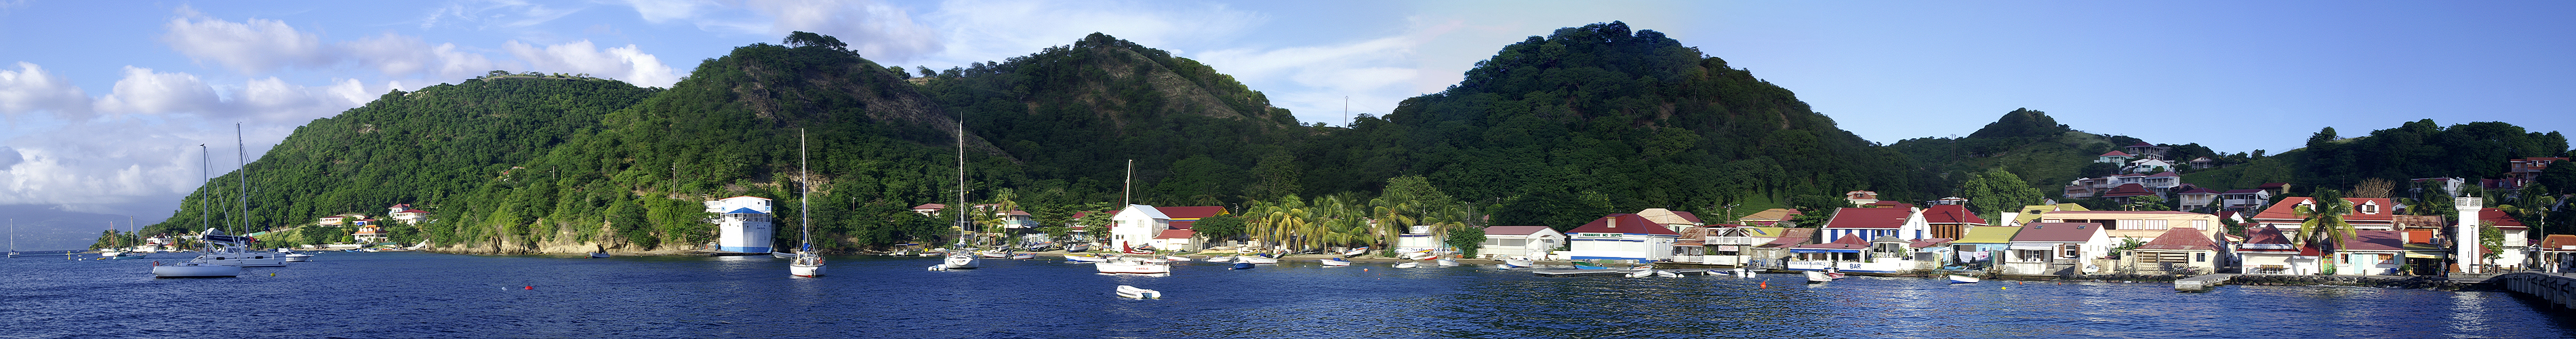 Photo panoramique de la baie des Saintes (moyenne)